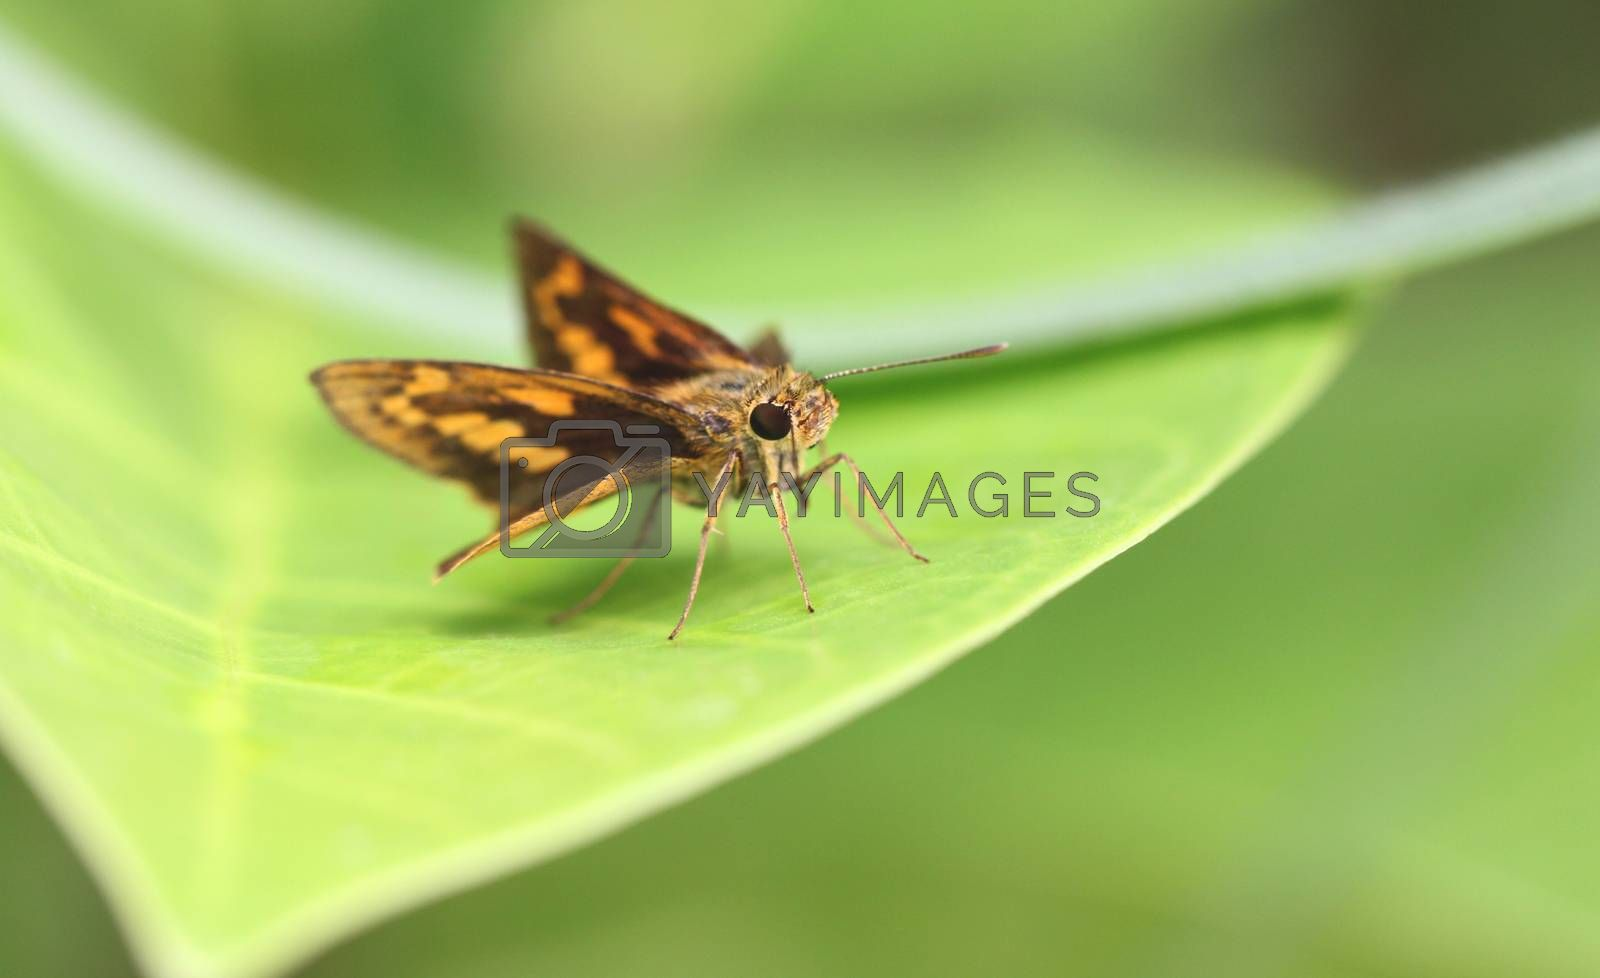 Brown insect on green leaf in the forest.